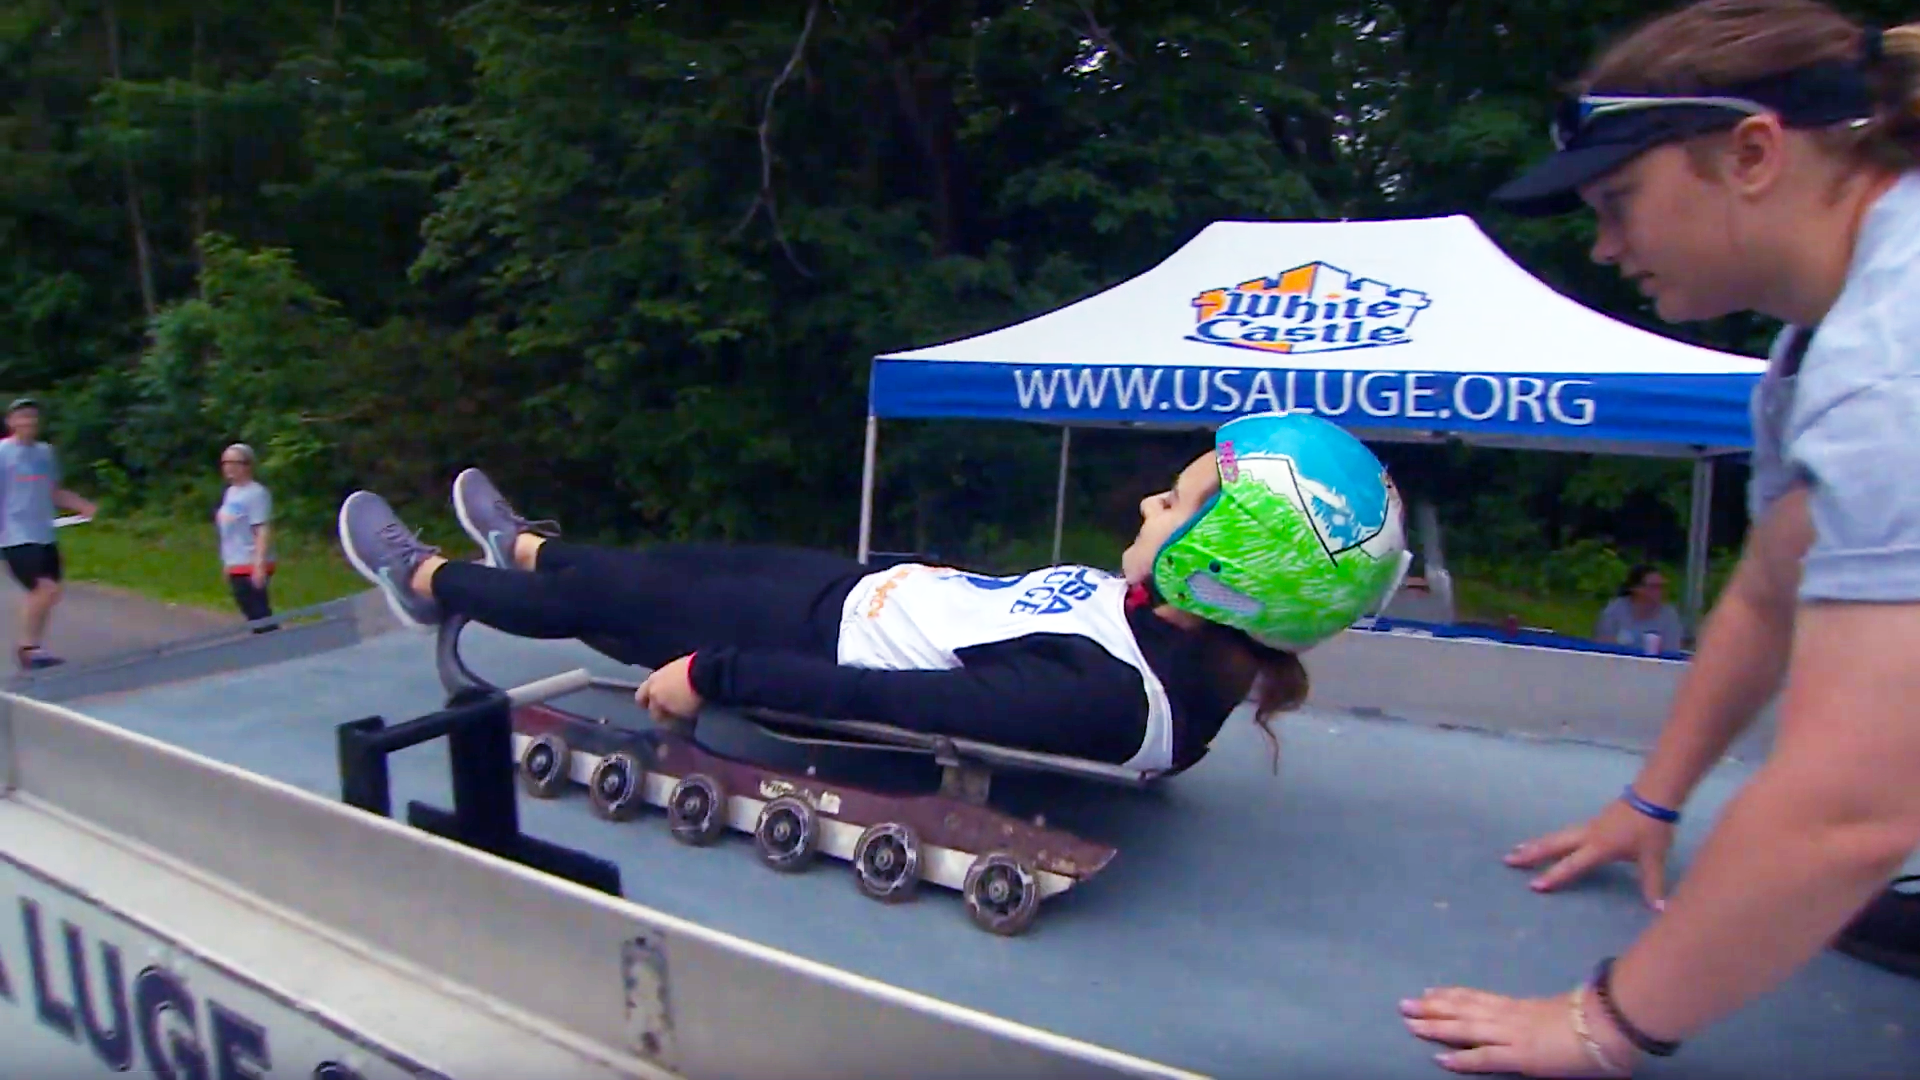 Outdoor Wisconsin #3604 - Luge Clinic/Adventure Rafting